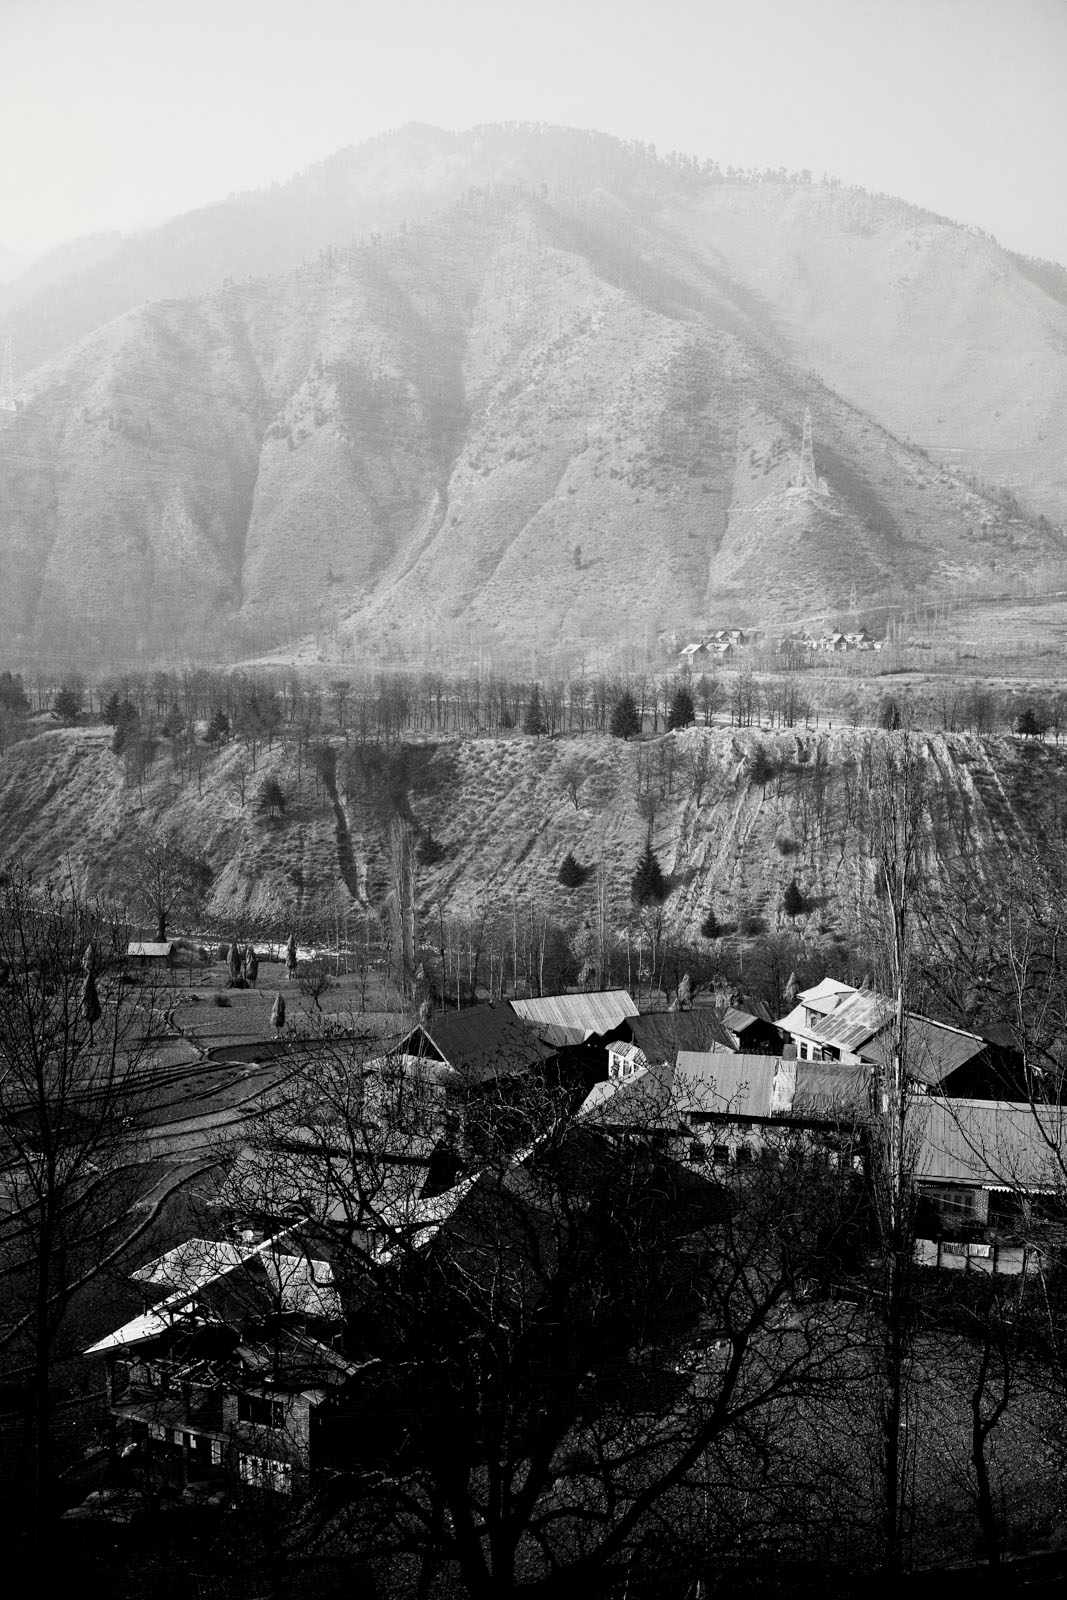 Village in north Kashmir